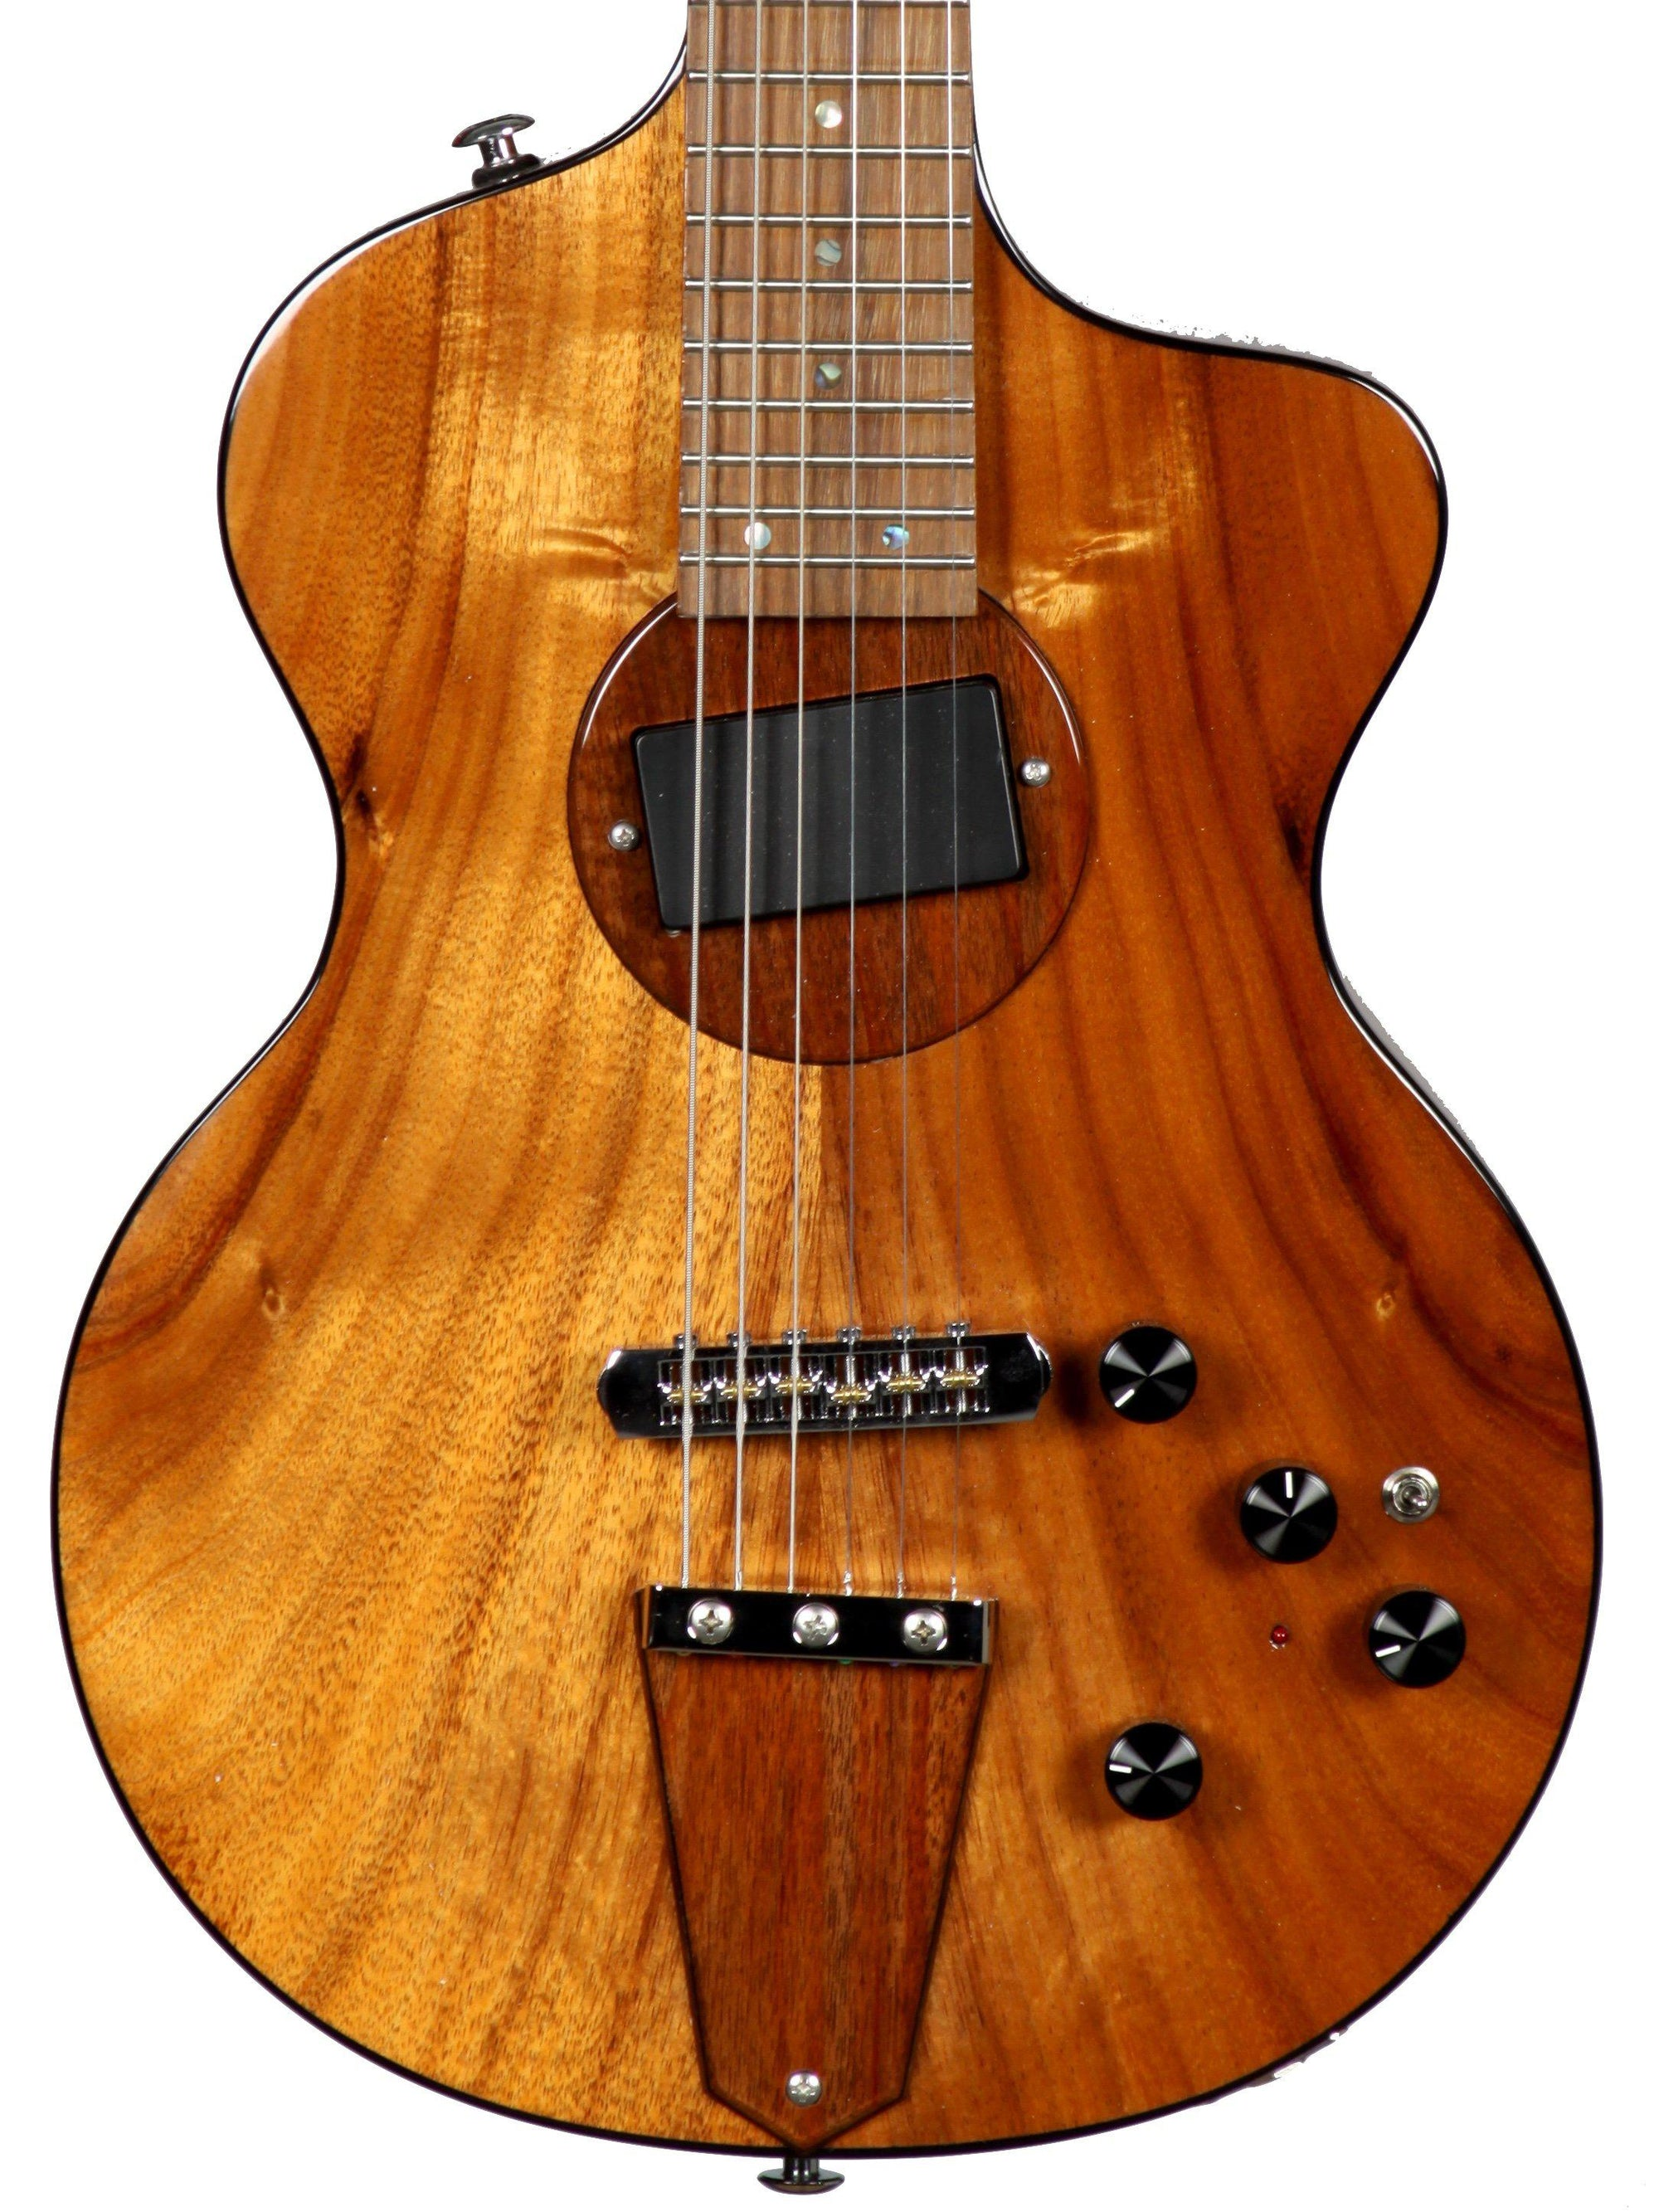 Rick Turner Model 1C Custom Acacia - Rick Turner Guitars - Heartbreaker Guitars